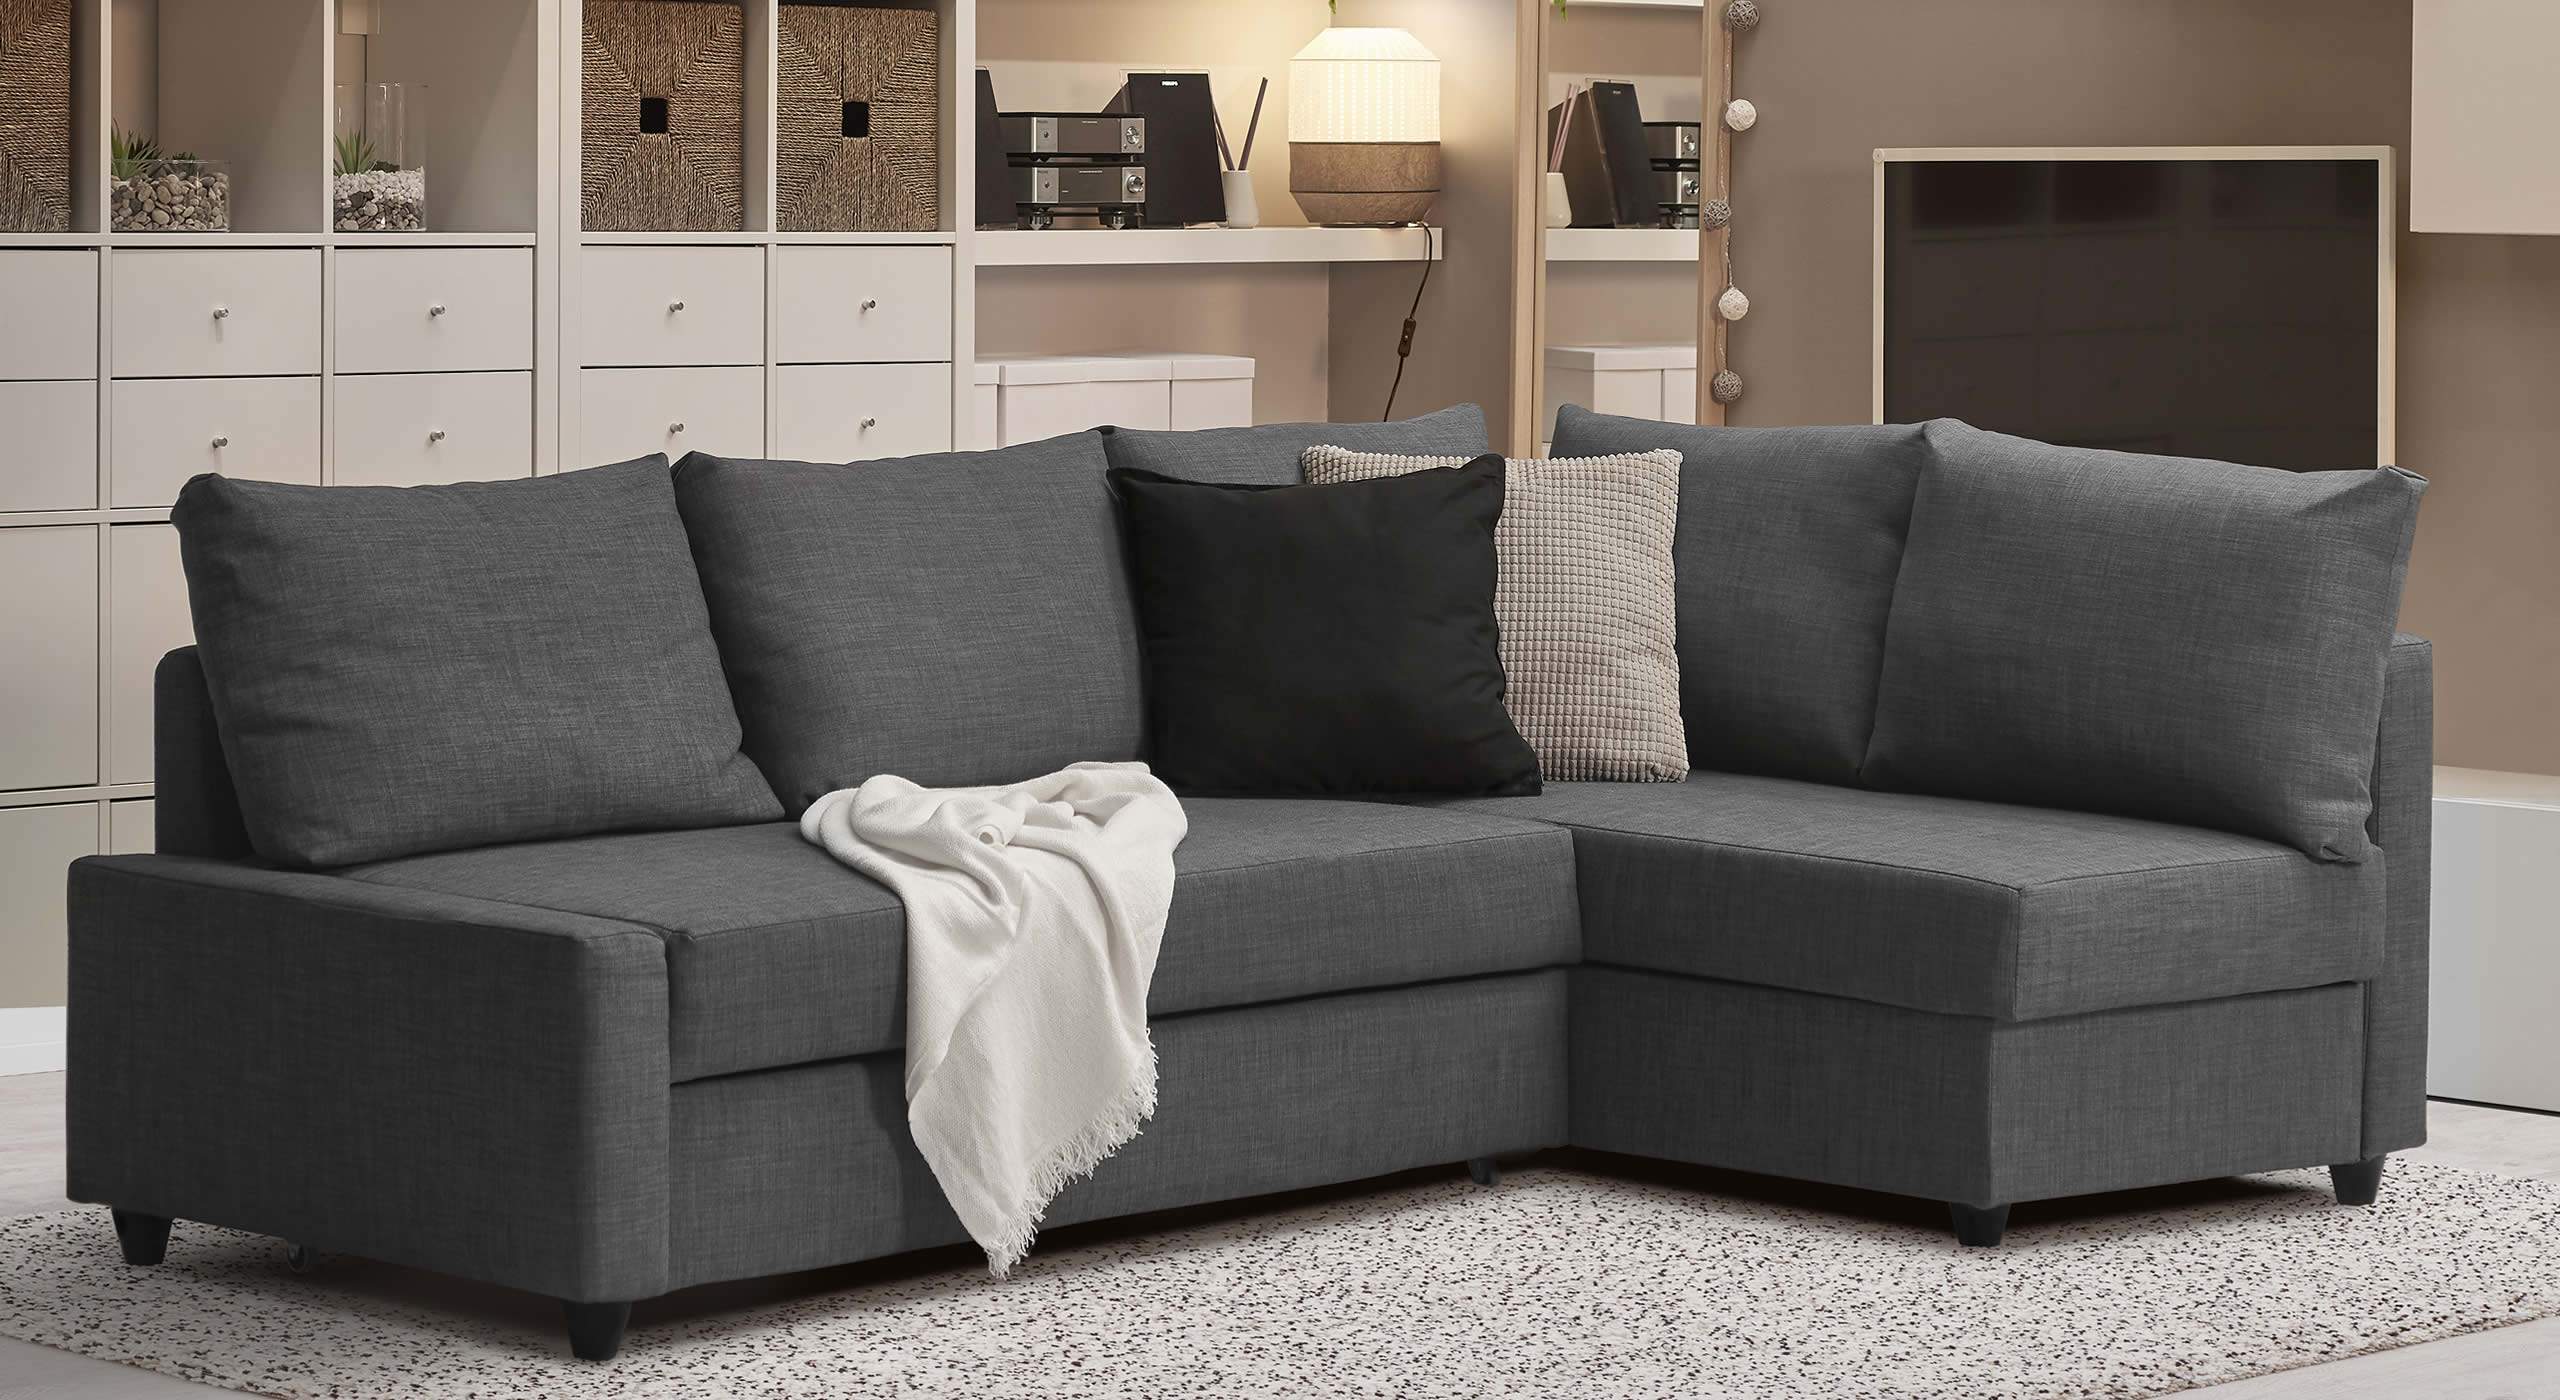 IKEA Ideas - Create comfort zones with 2020's most popular and functional products